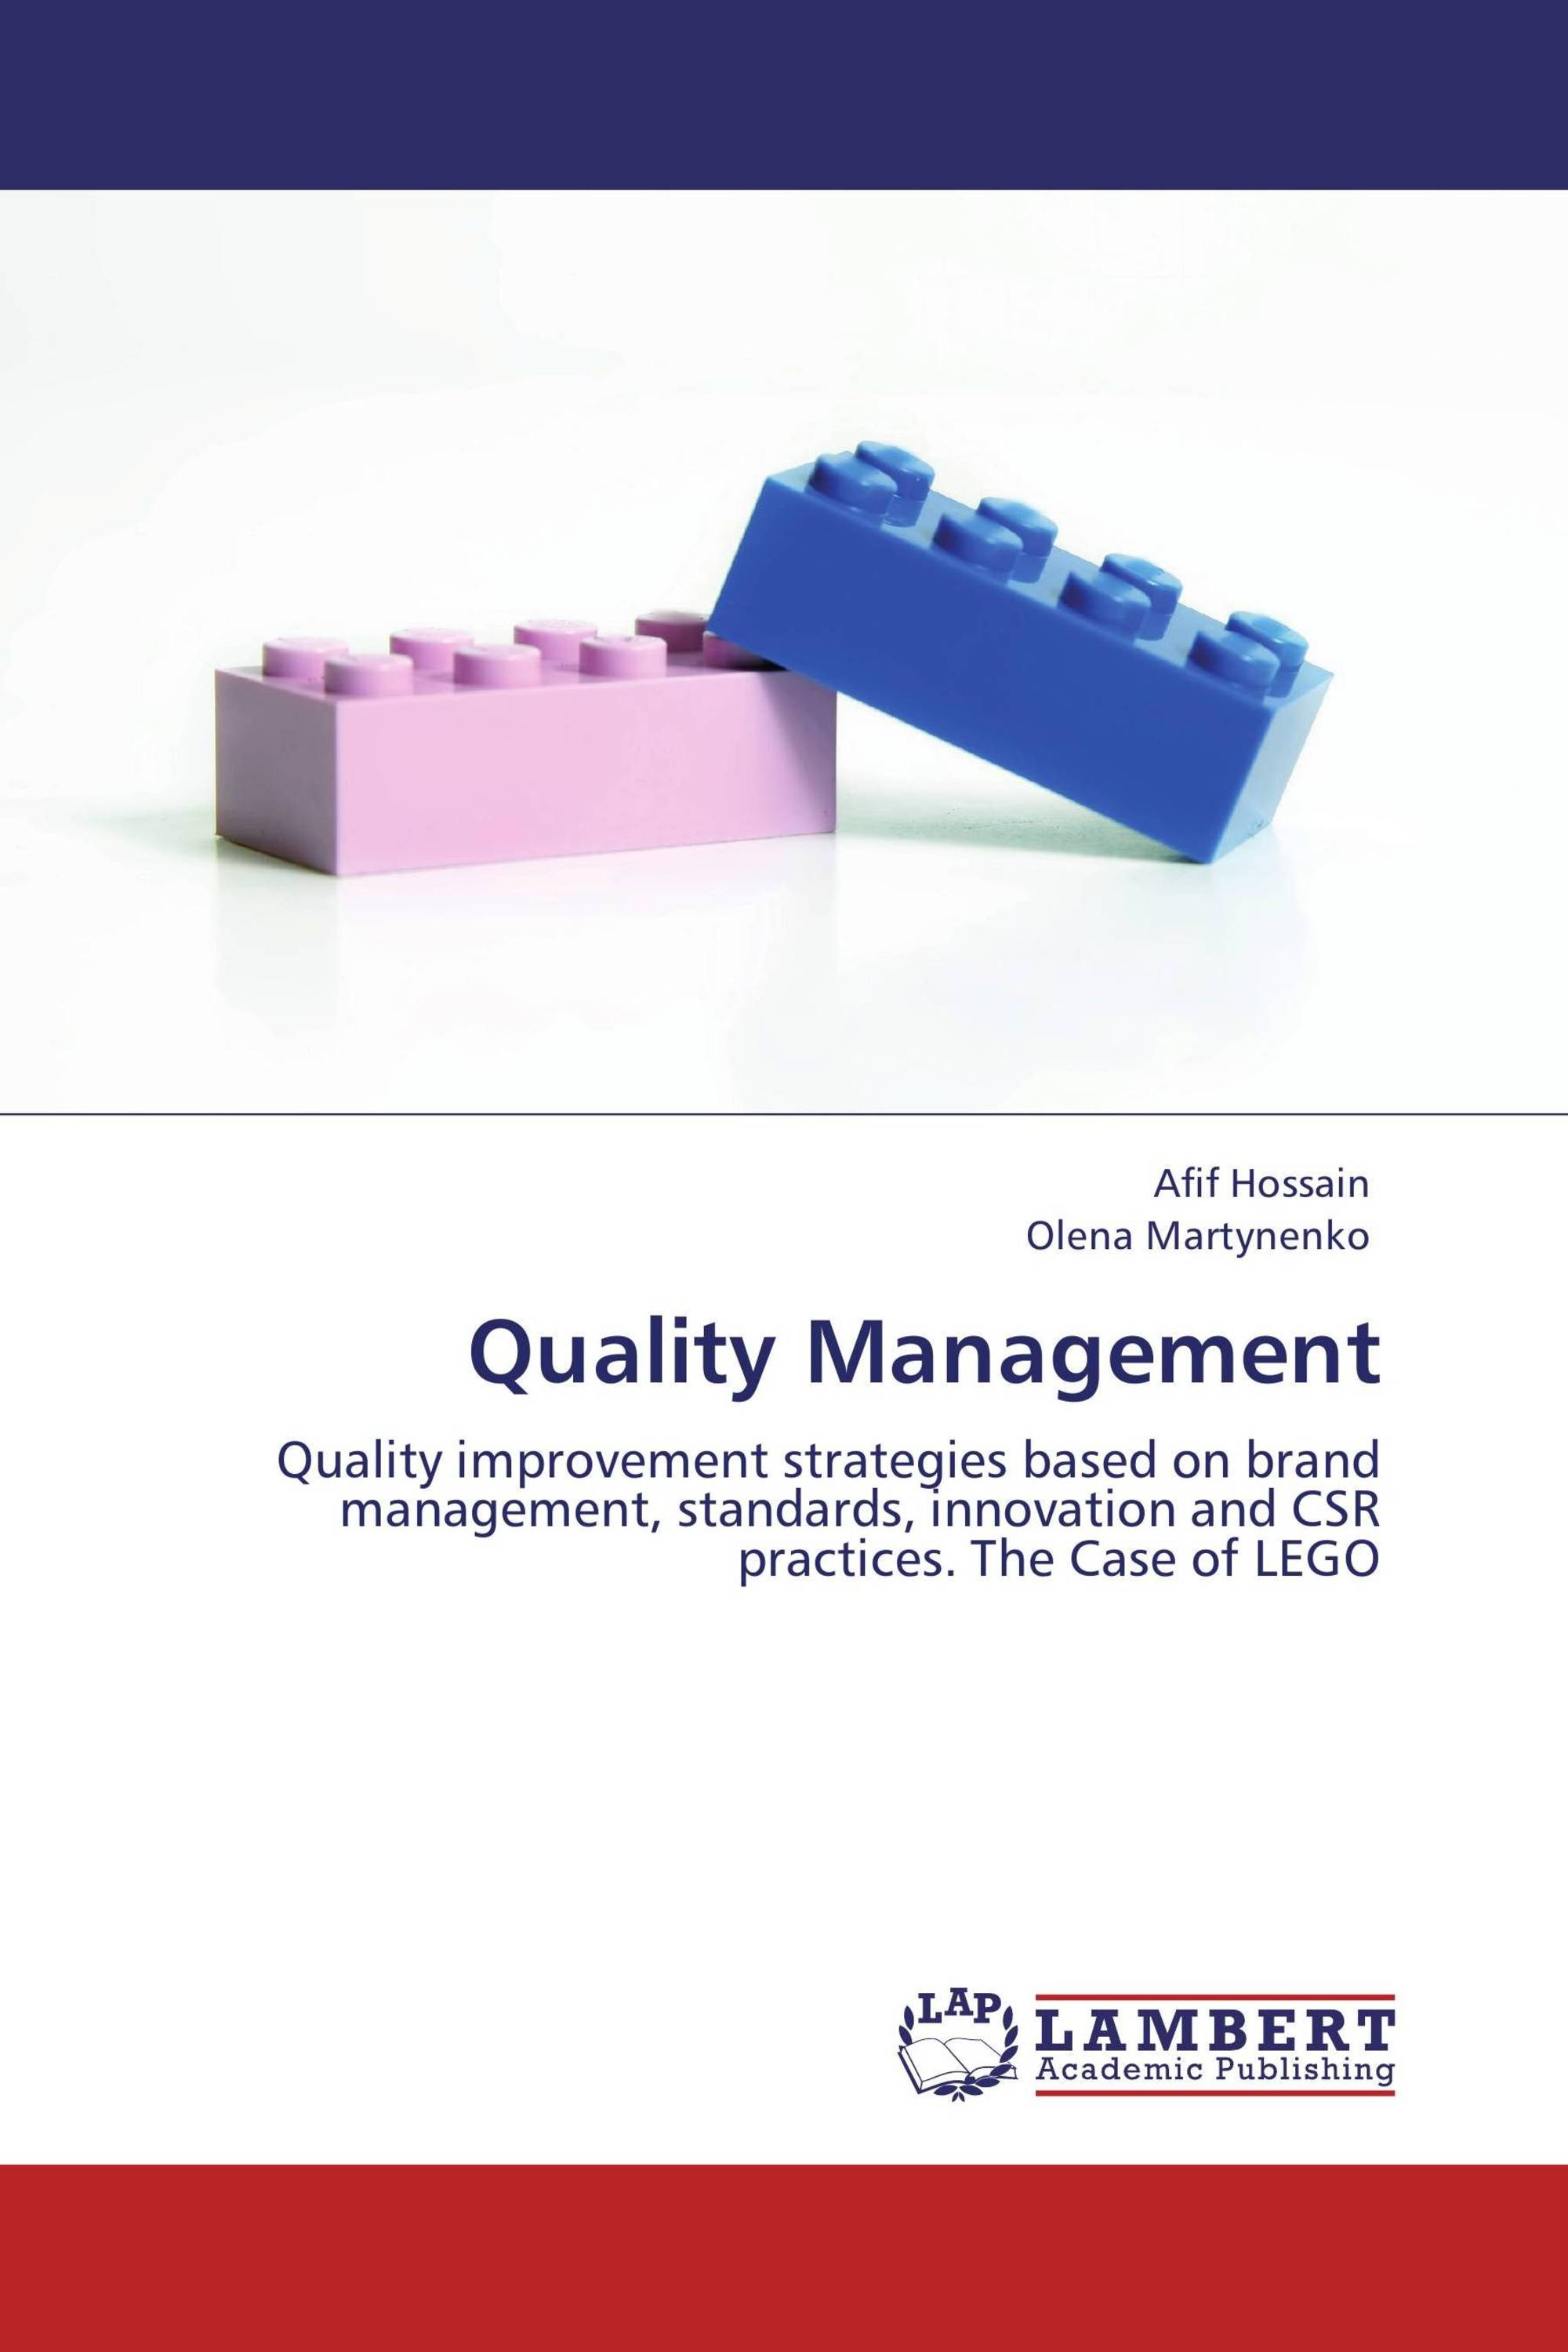 lego case strategic management